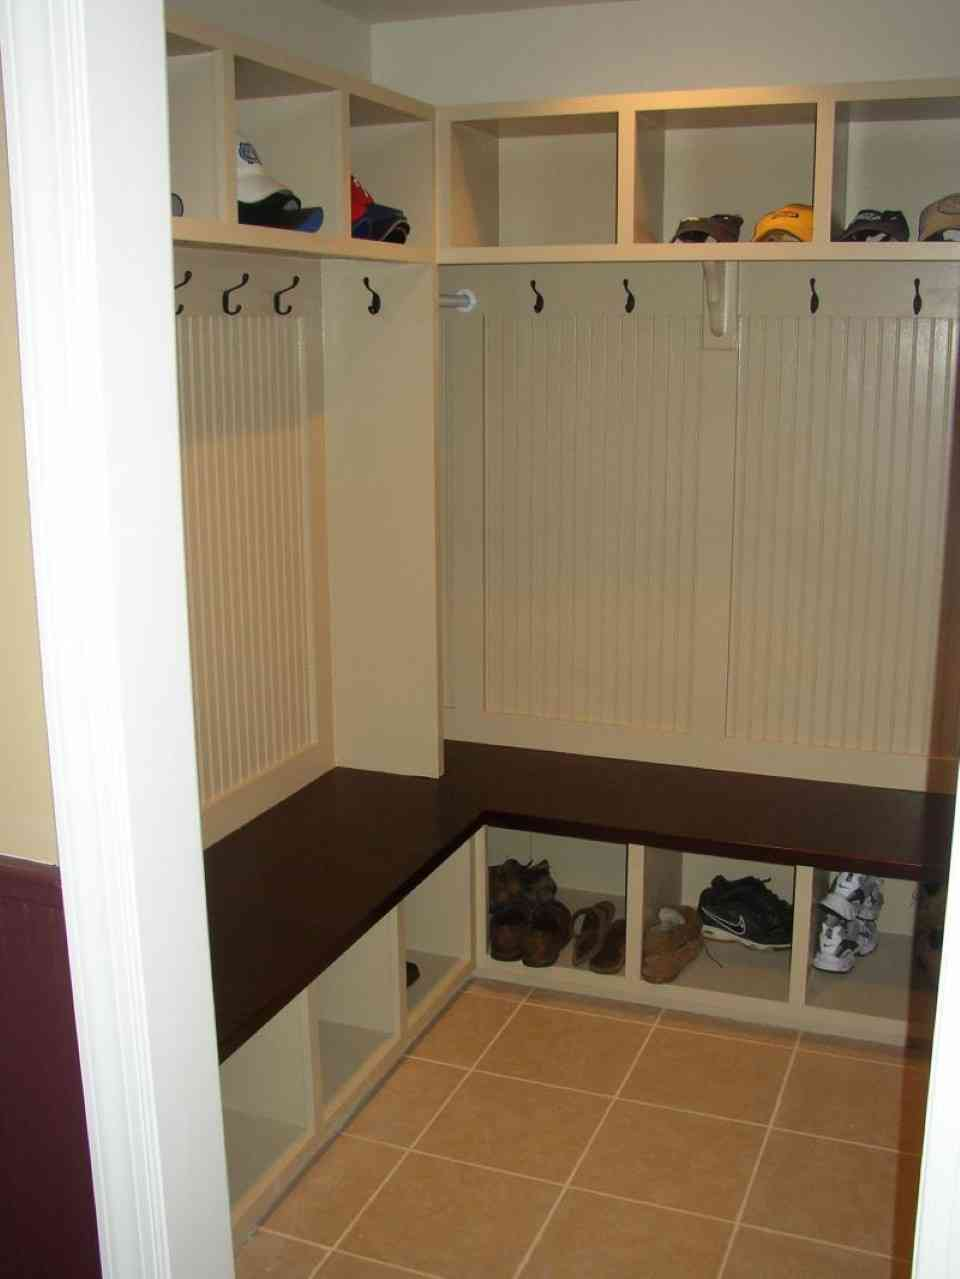 Mudroom Shelves with Hooks Decor IdeasDecor Ideas : Mudroom Shelves with Hooks from icanhasgif.com size 960 x 1279 jpeg 34kB